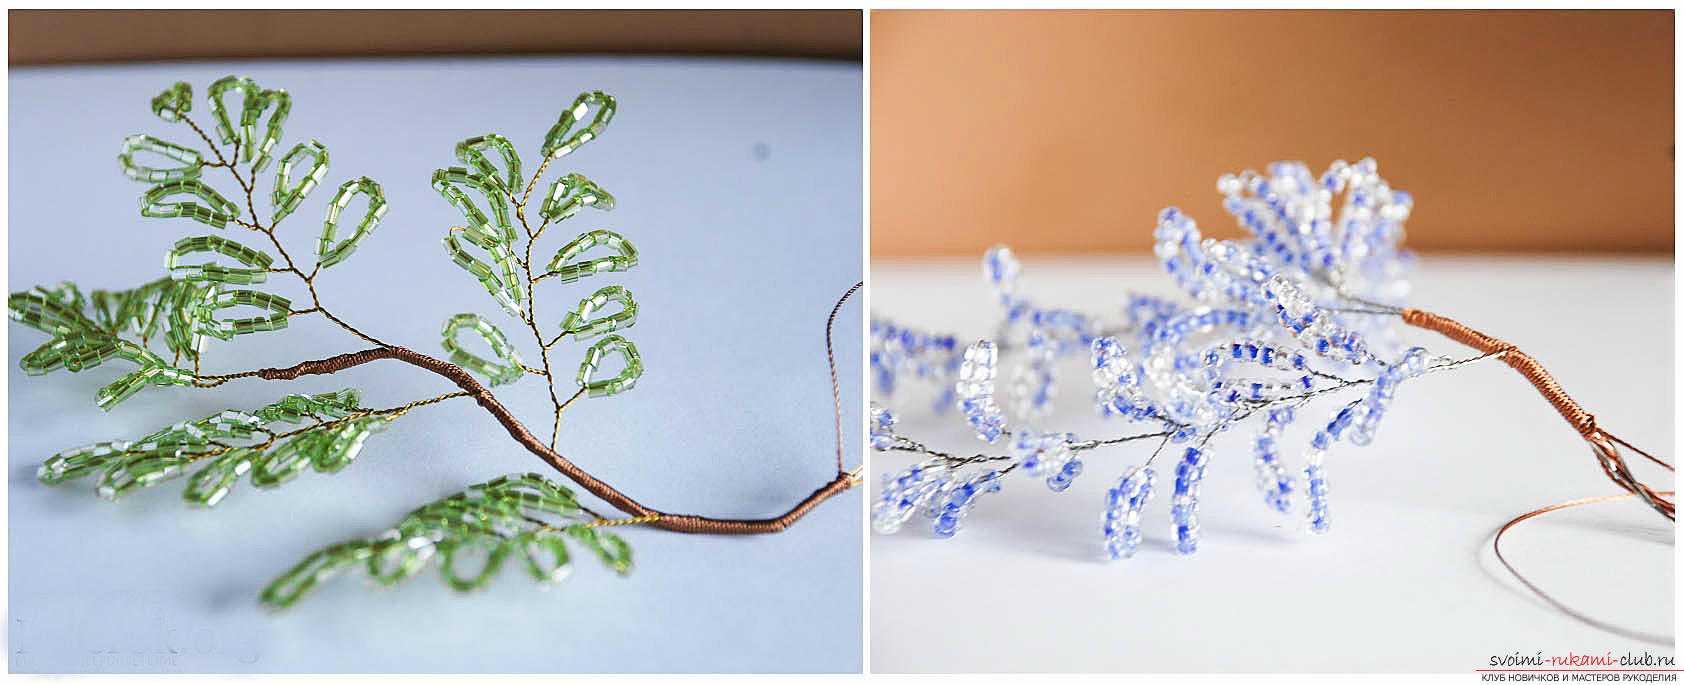 Free master classes on creating wisteria from beads, tips and advice on making blossoming brushes and decorating the trunk. step-by-step photos .. Picture # 4